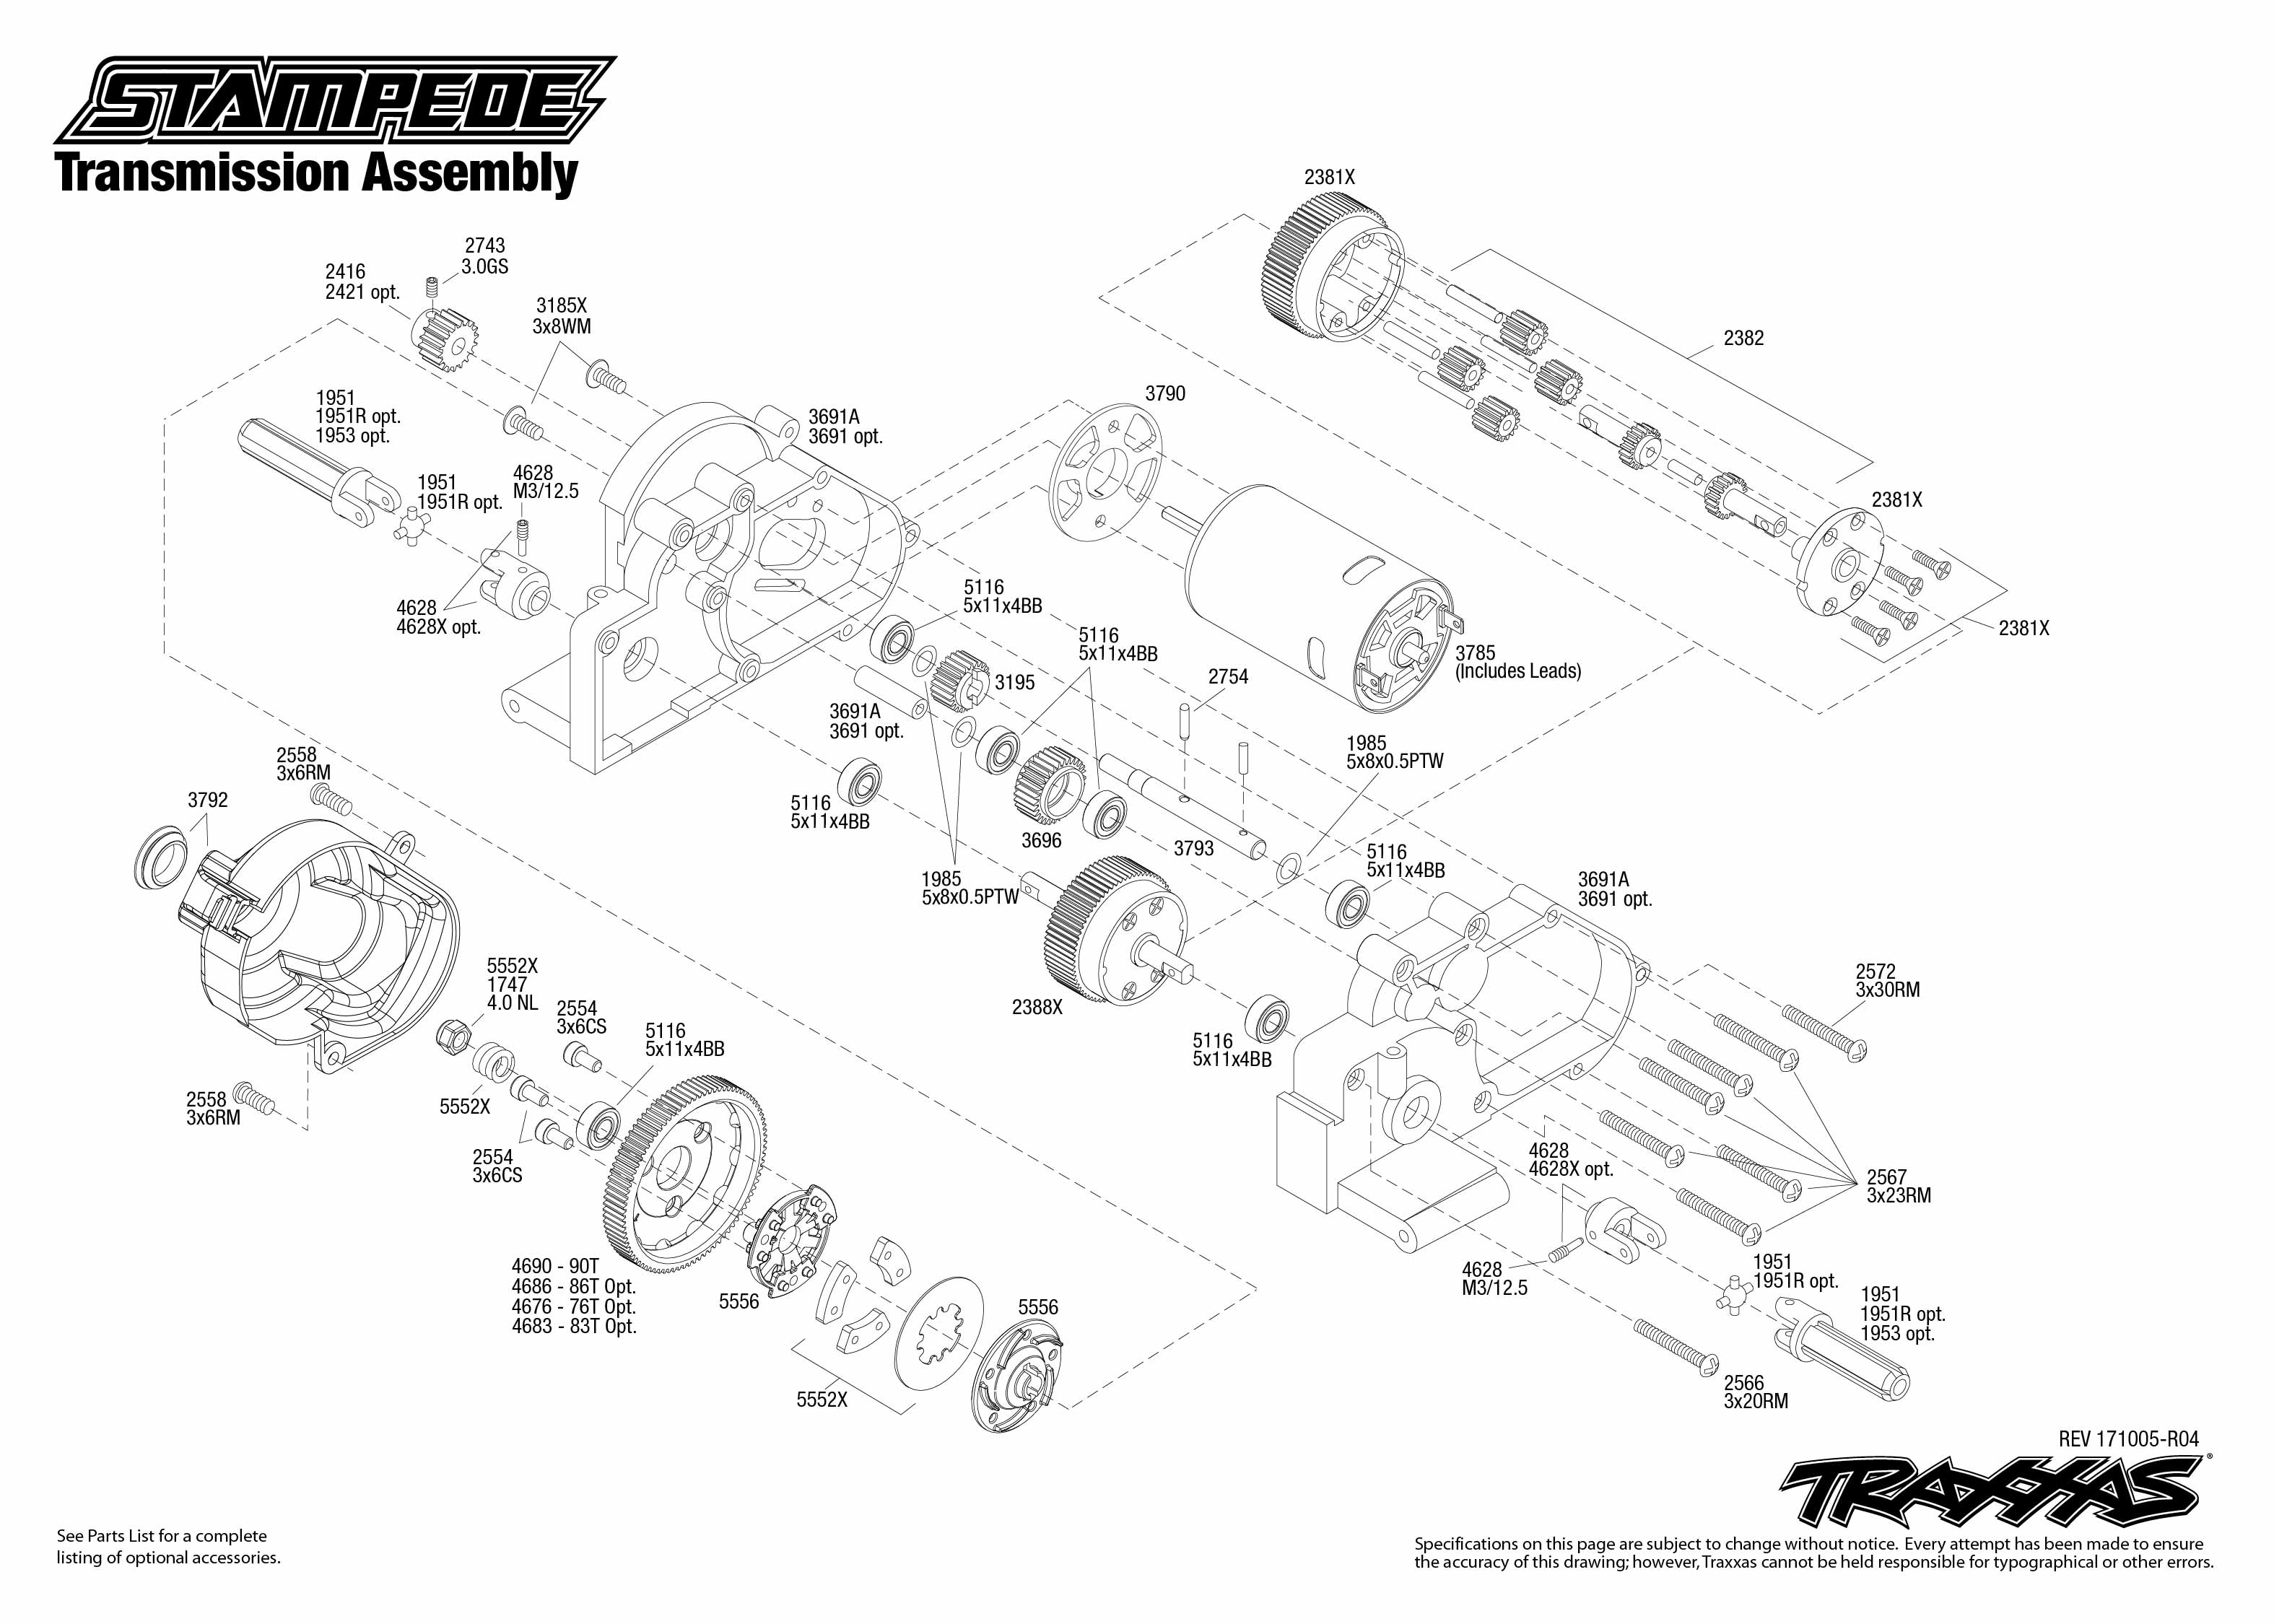 Stampede 1 Transmission Assembly Exploded View